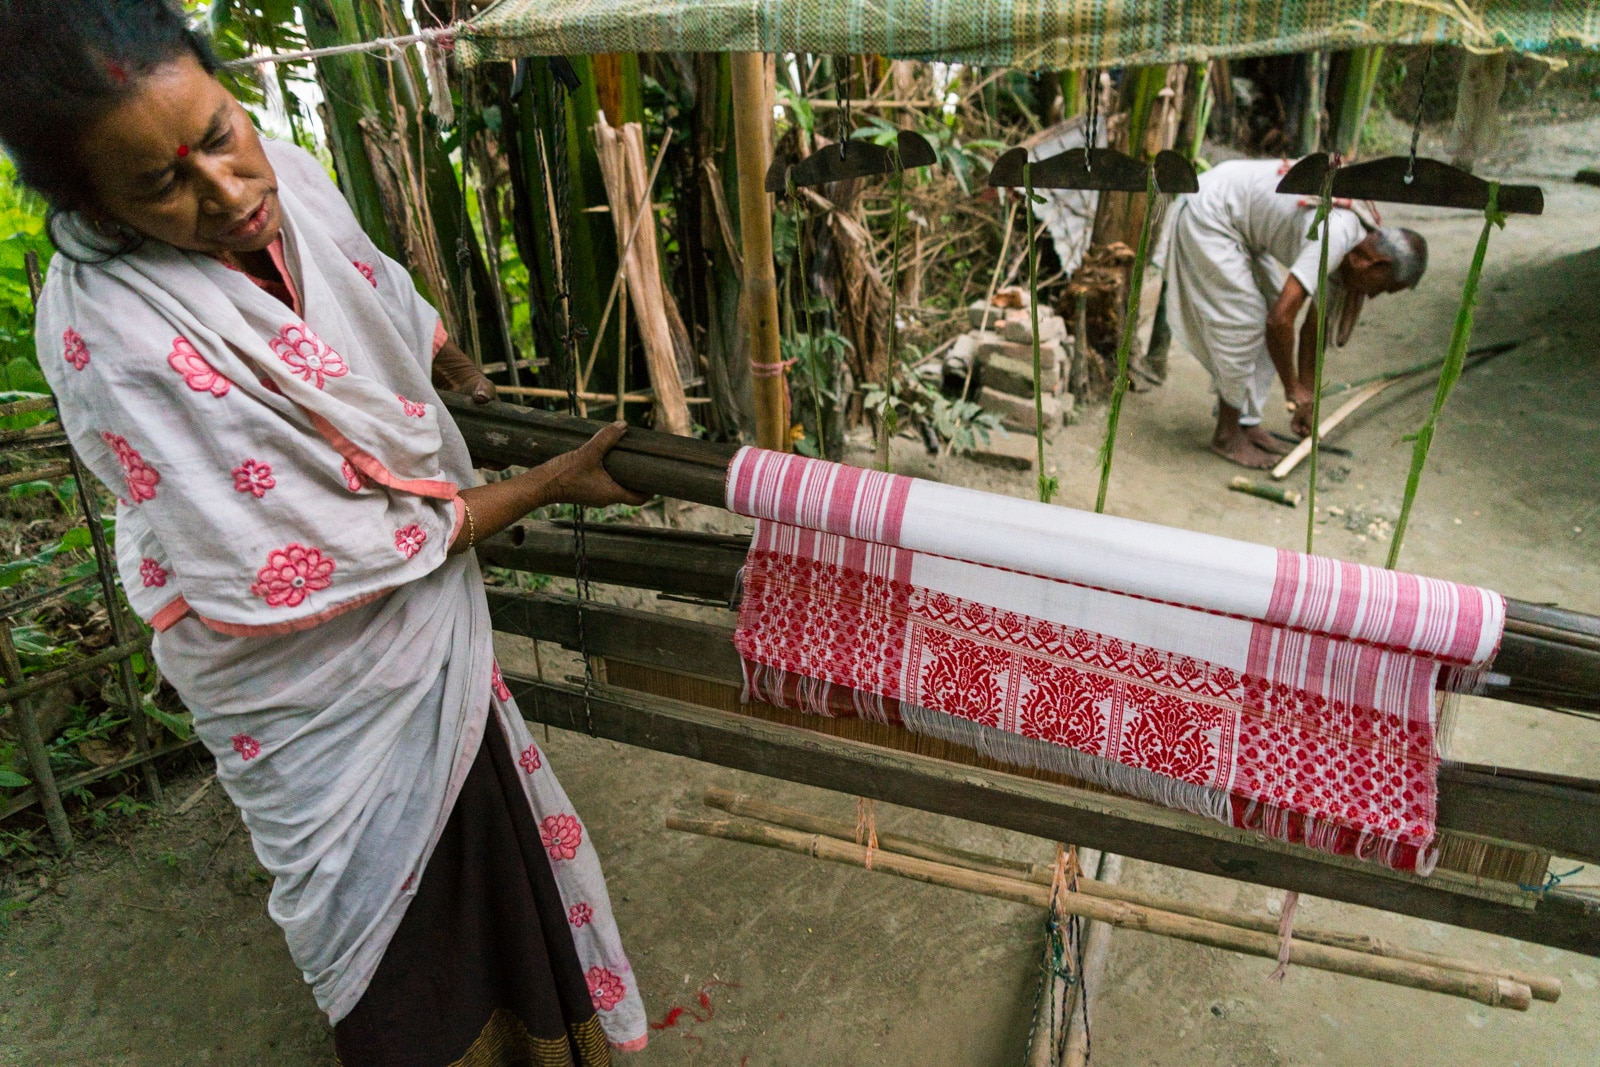 Luxury river cruise in India with Assam Bengal Navigation - Assamese woman showing off gamosa scarf weaving on a loom - Lost With Purpose travel blog